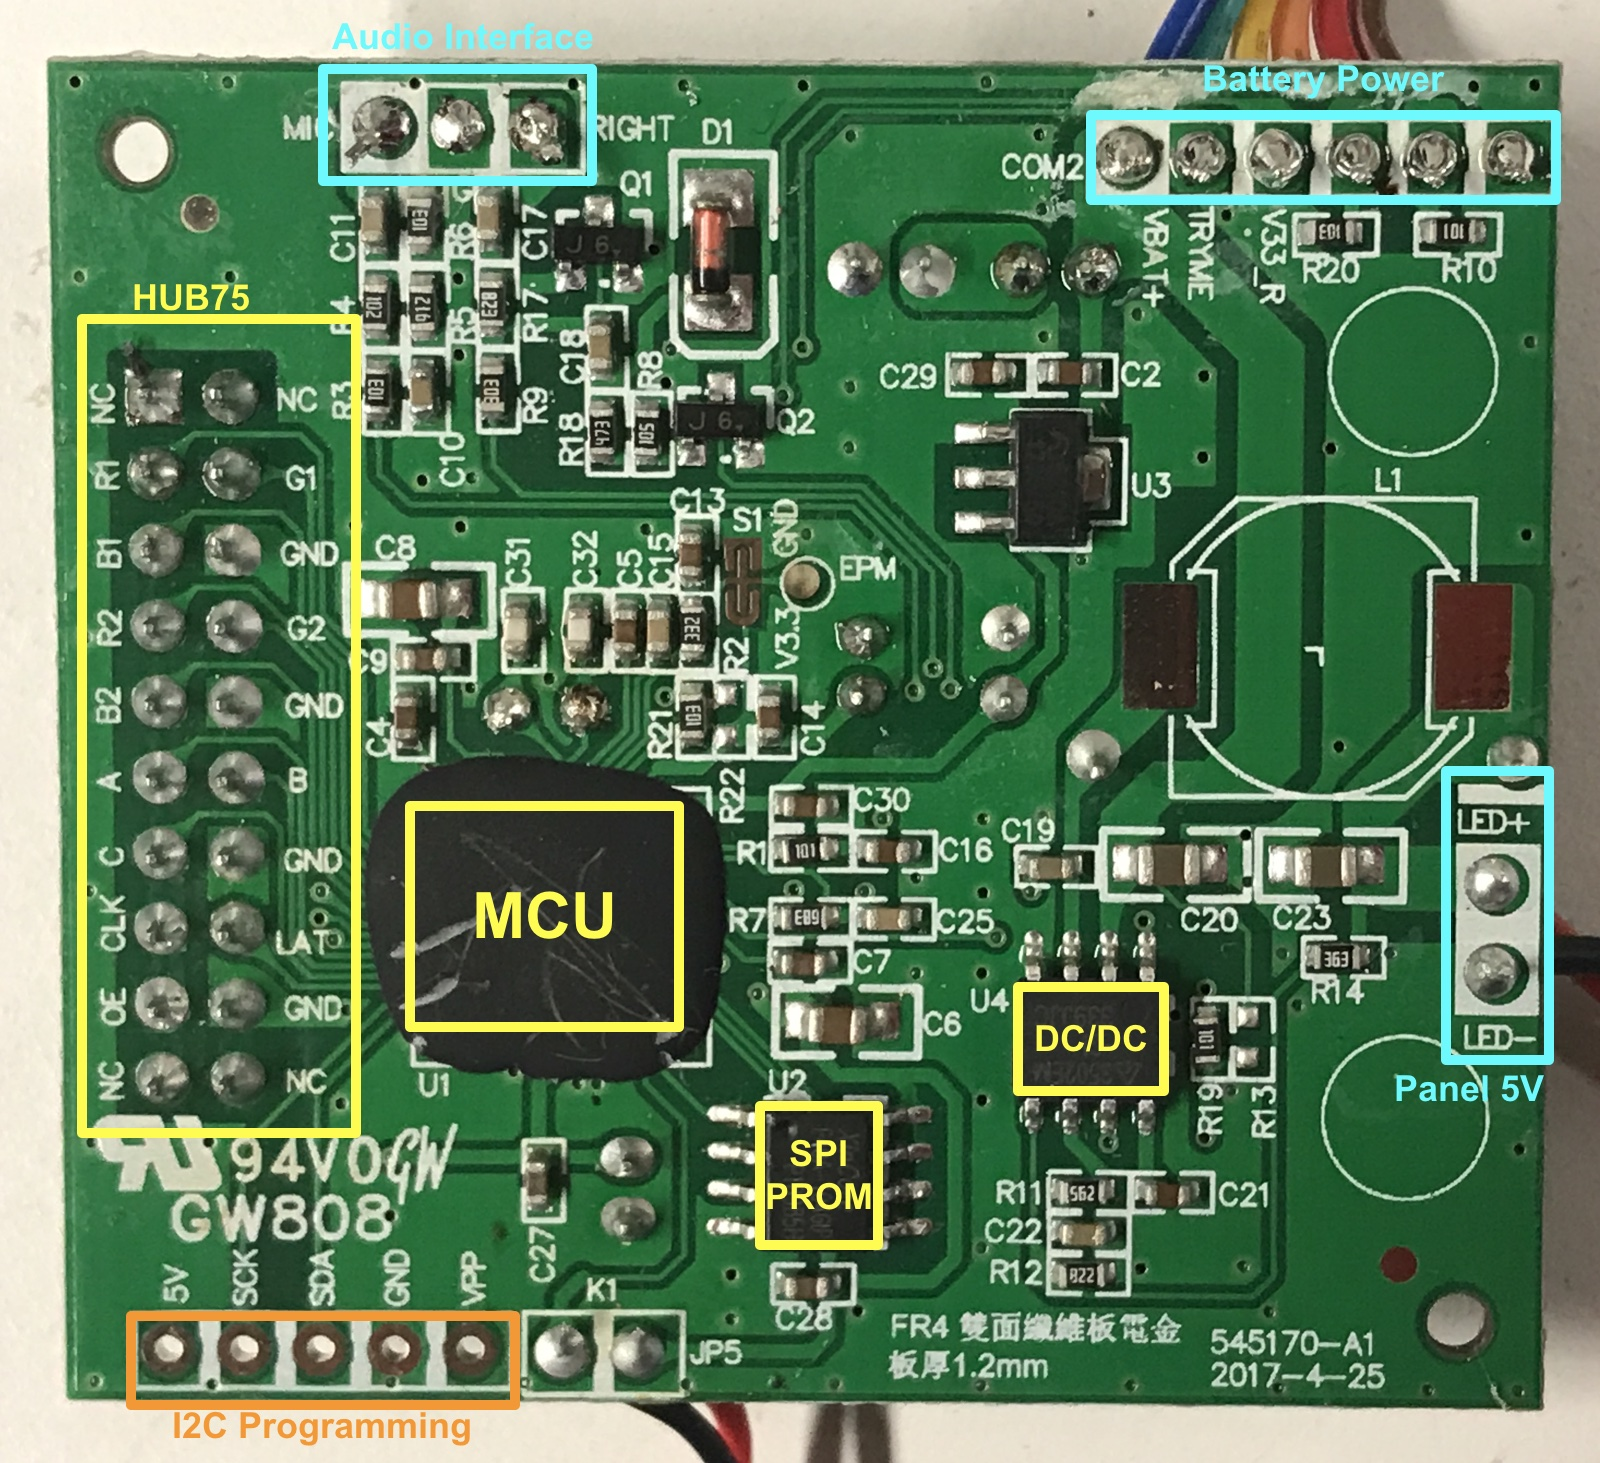 Annotated Controller PCB Front